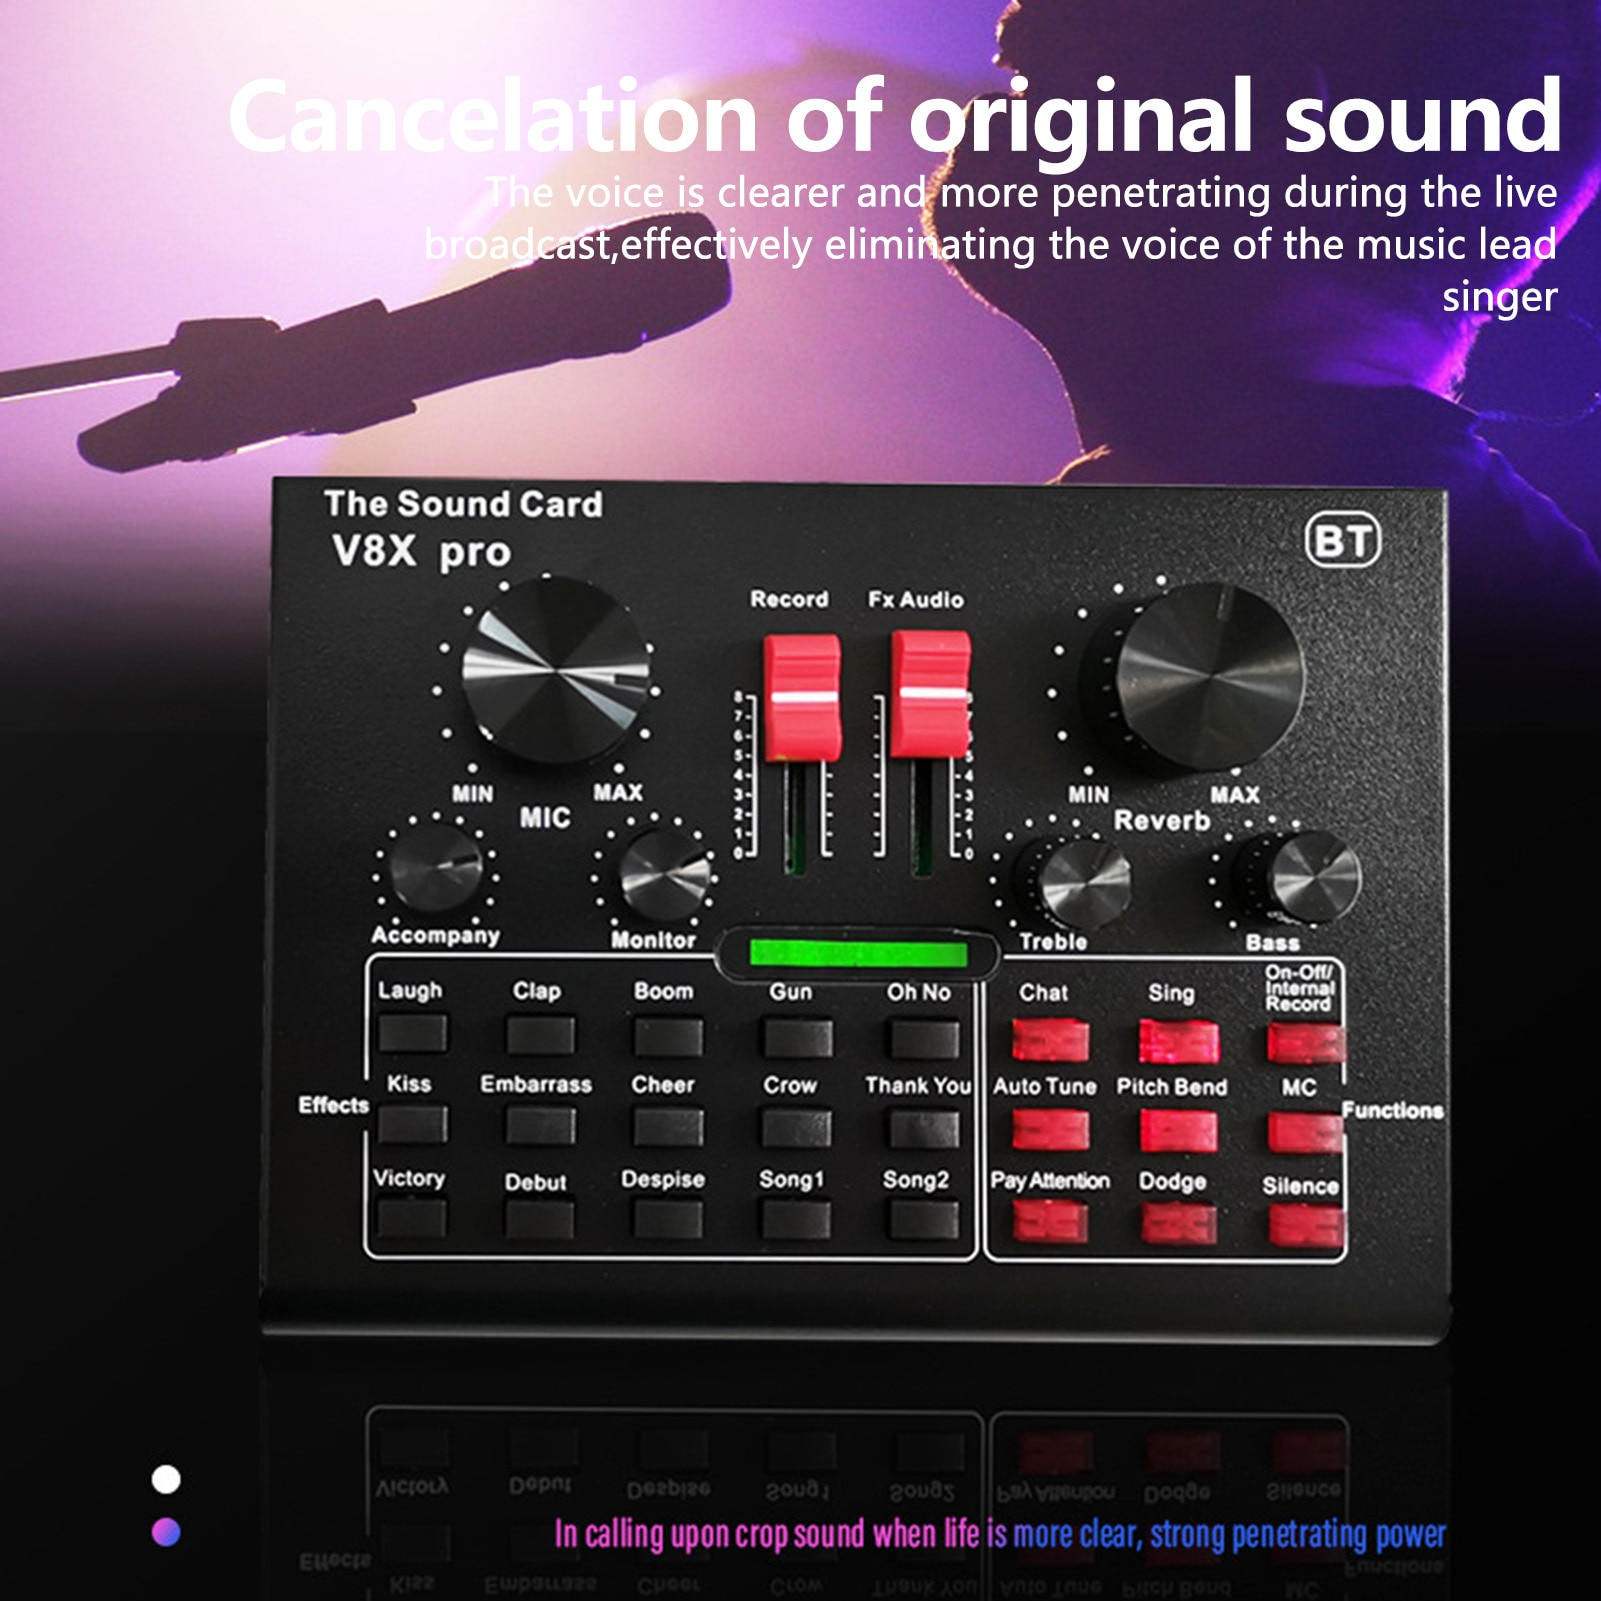 V8X Pro Live Sound Card 15 Sound Effects Audio Recording Equipments With BT function Intelligent